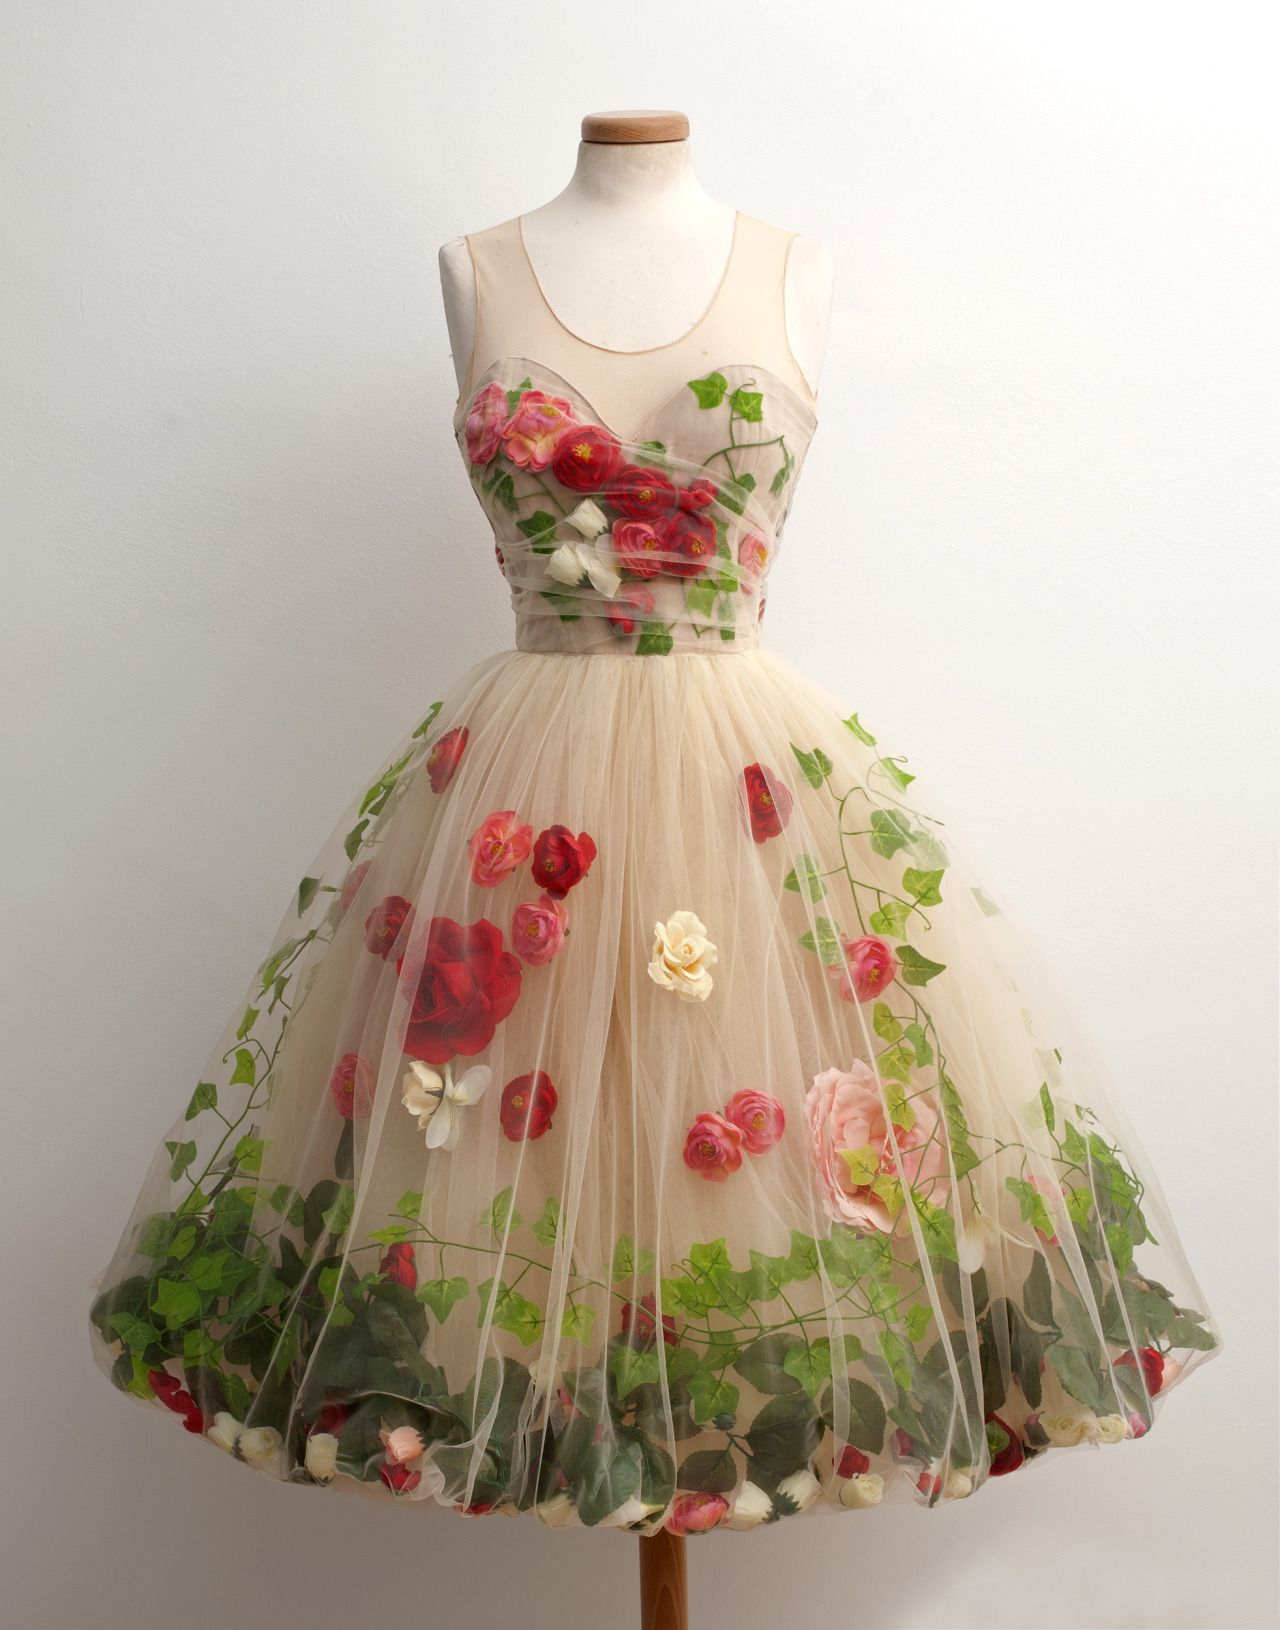 Beautiful us style gauze dress by chotronette with flowers and ivy